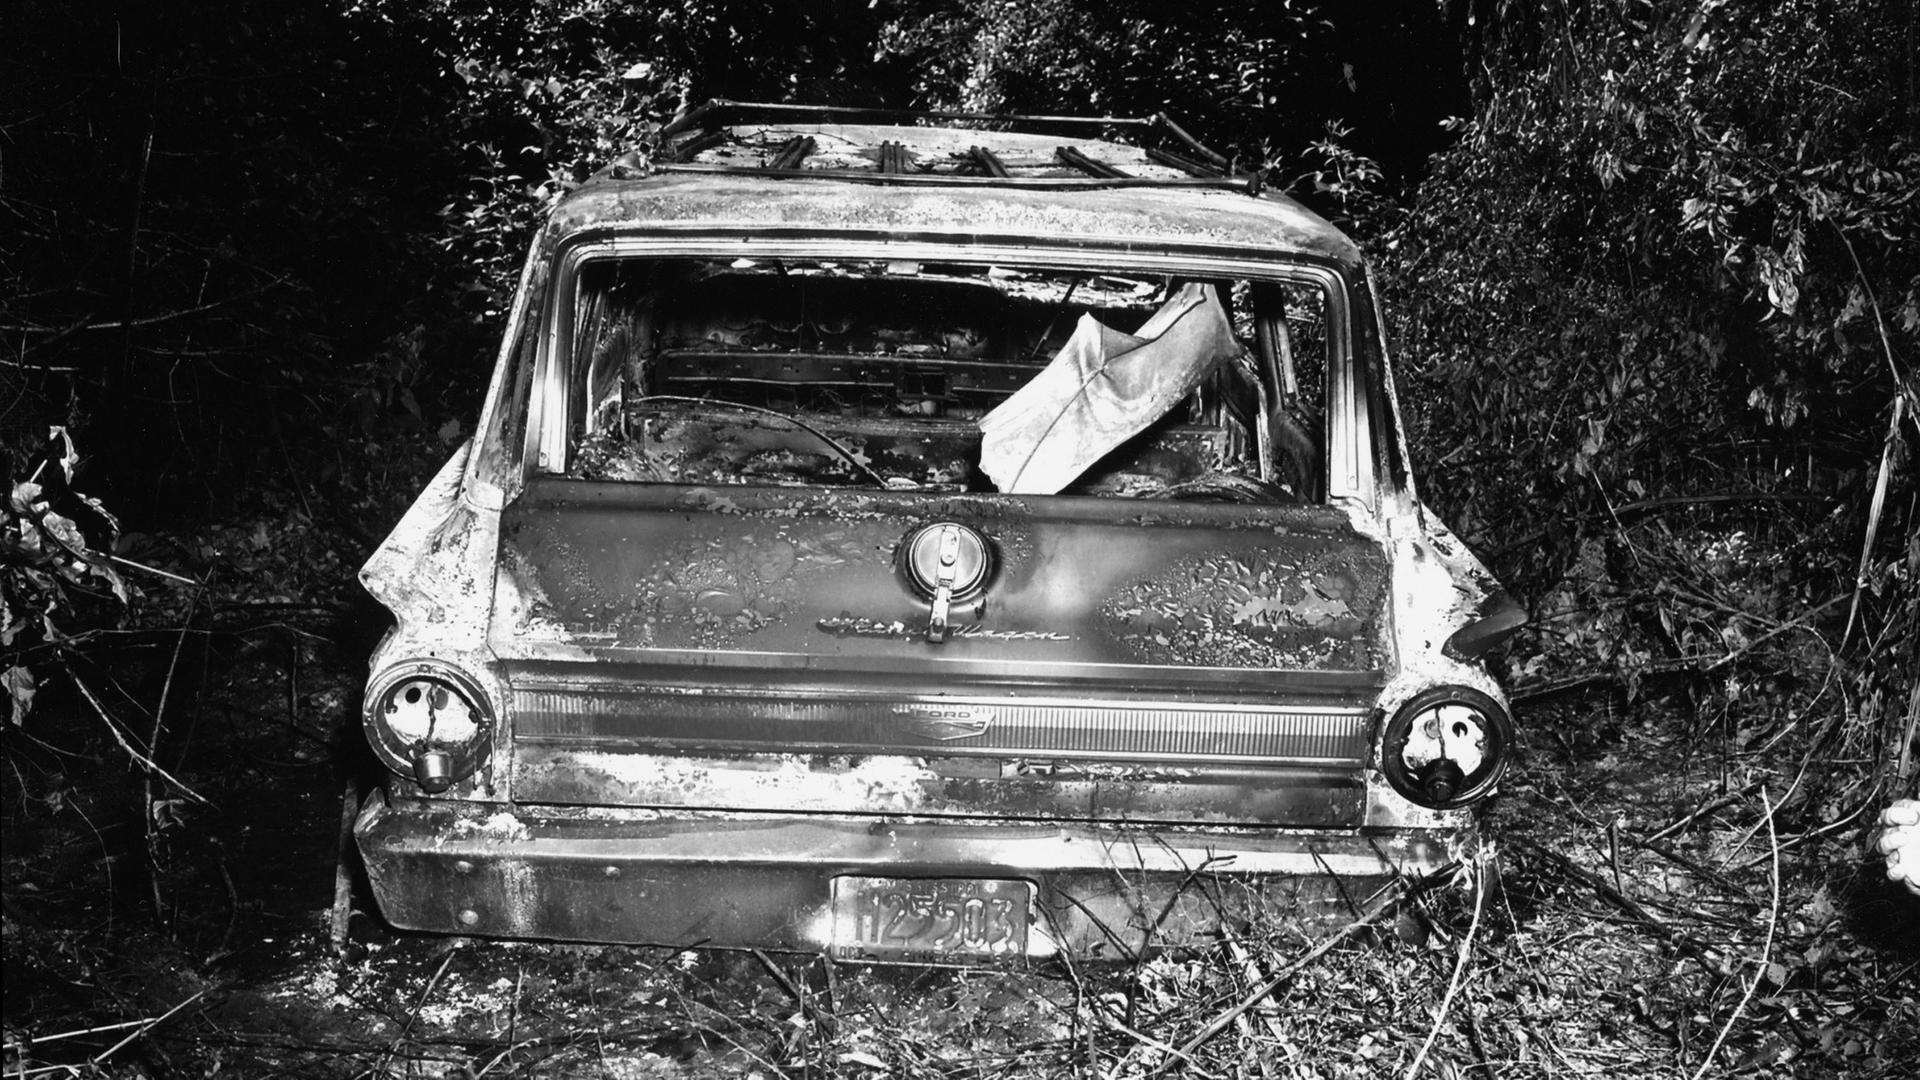 Remains of murdered men's car